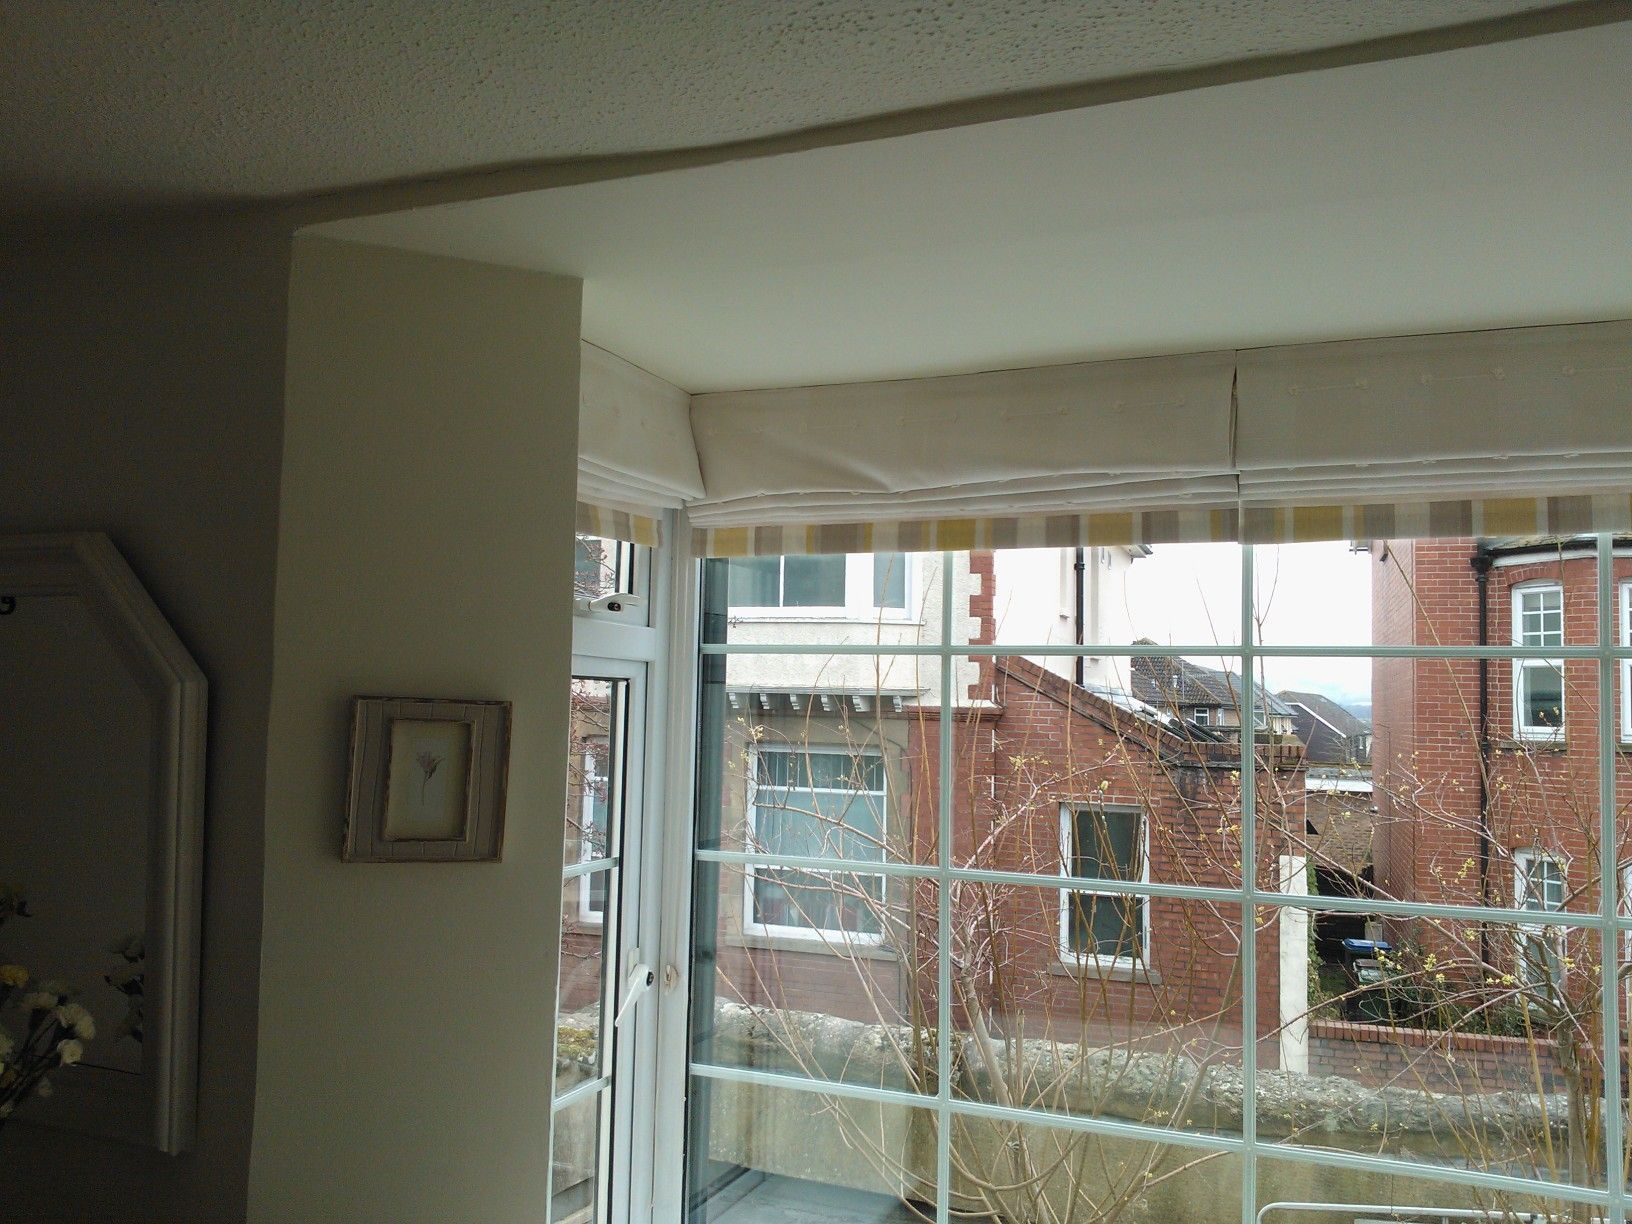 Square Bay Window 4 Sets Of Roman Blinds Lined With